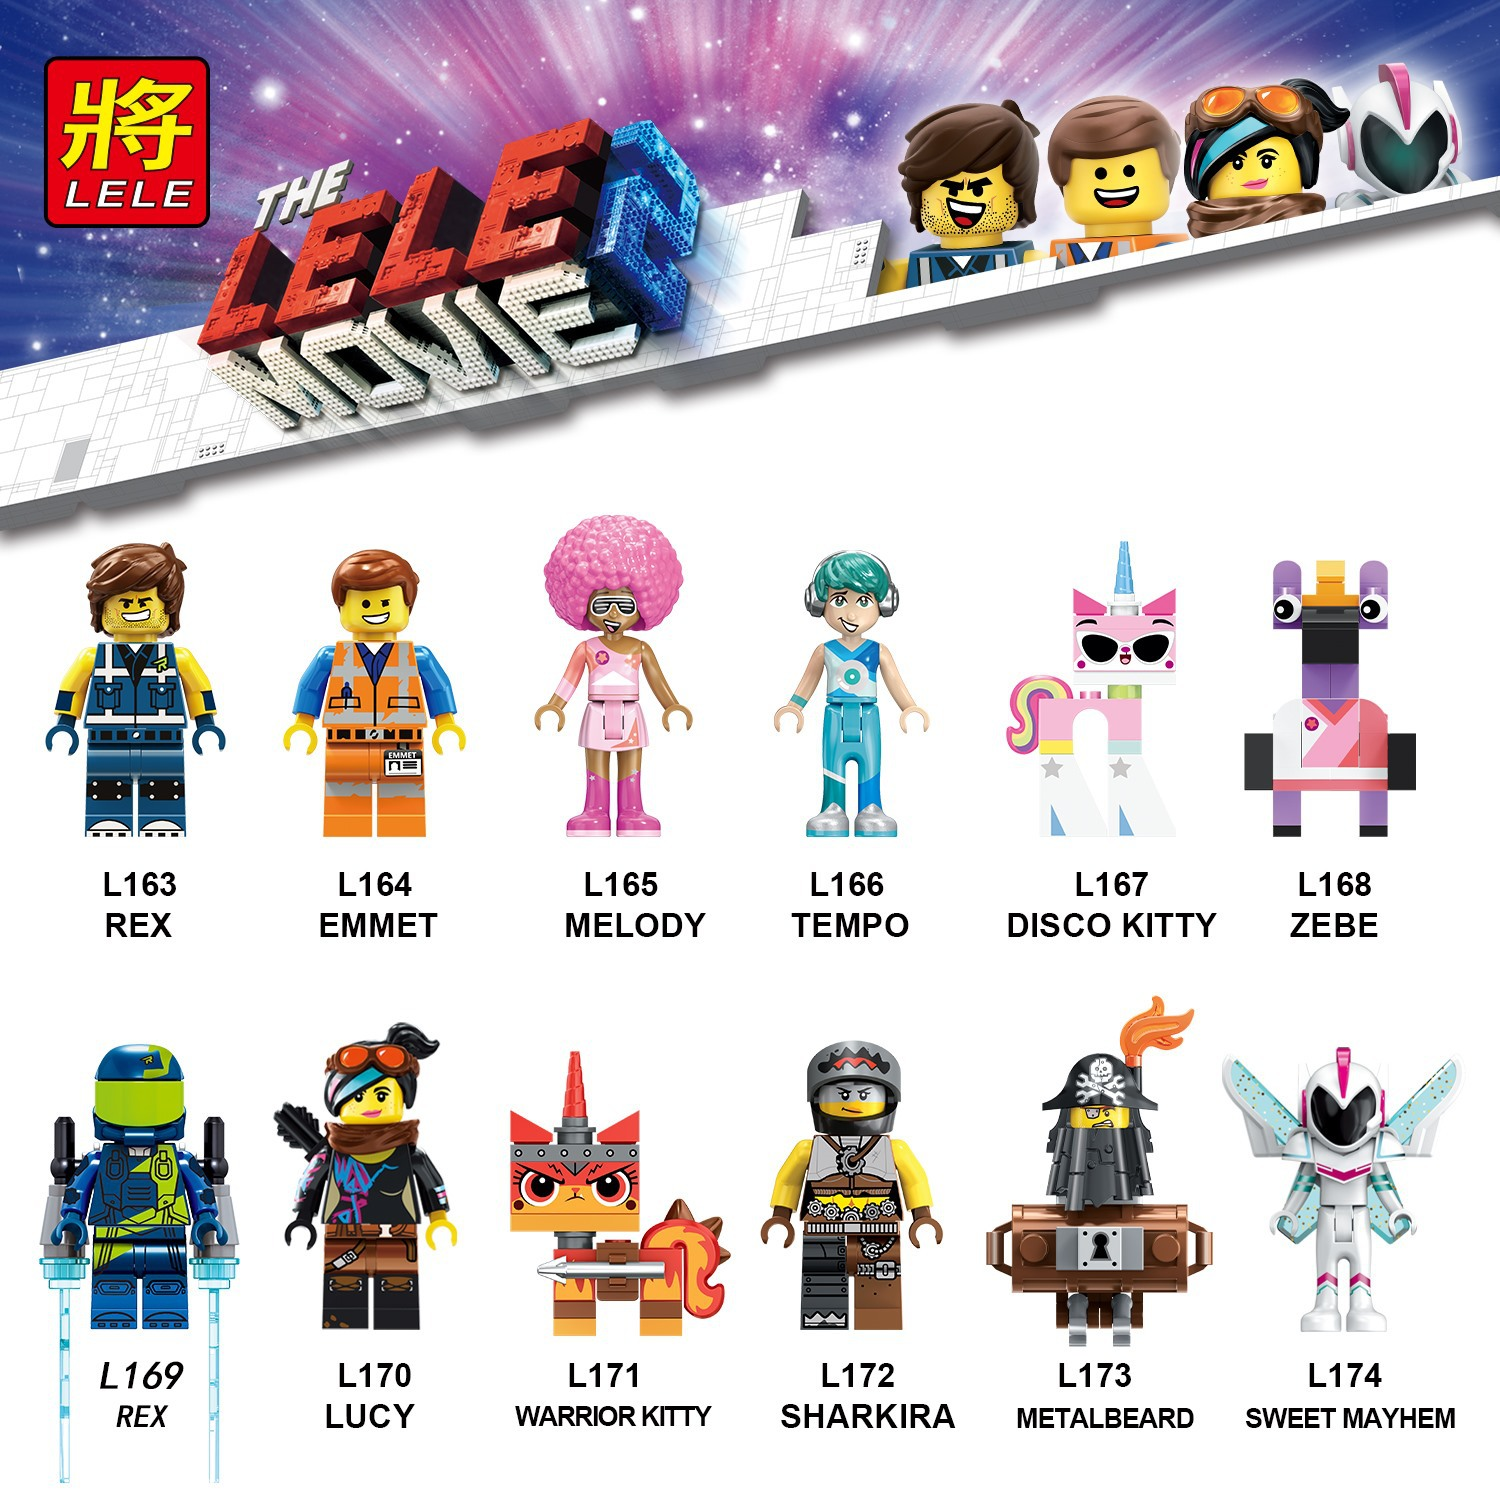 Legoing Moives 2 Emmet Lucy Melody Tempo Disco Warrior Kitty ZEBE Rex Creators Figures Wyldstyle Building Toys for Kids Legoings